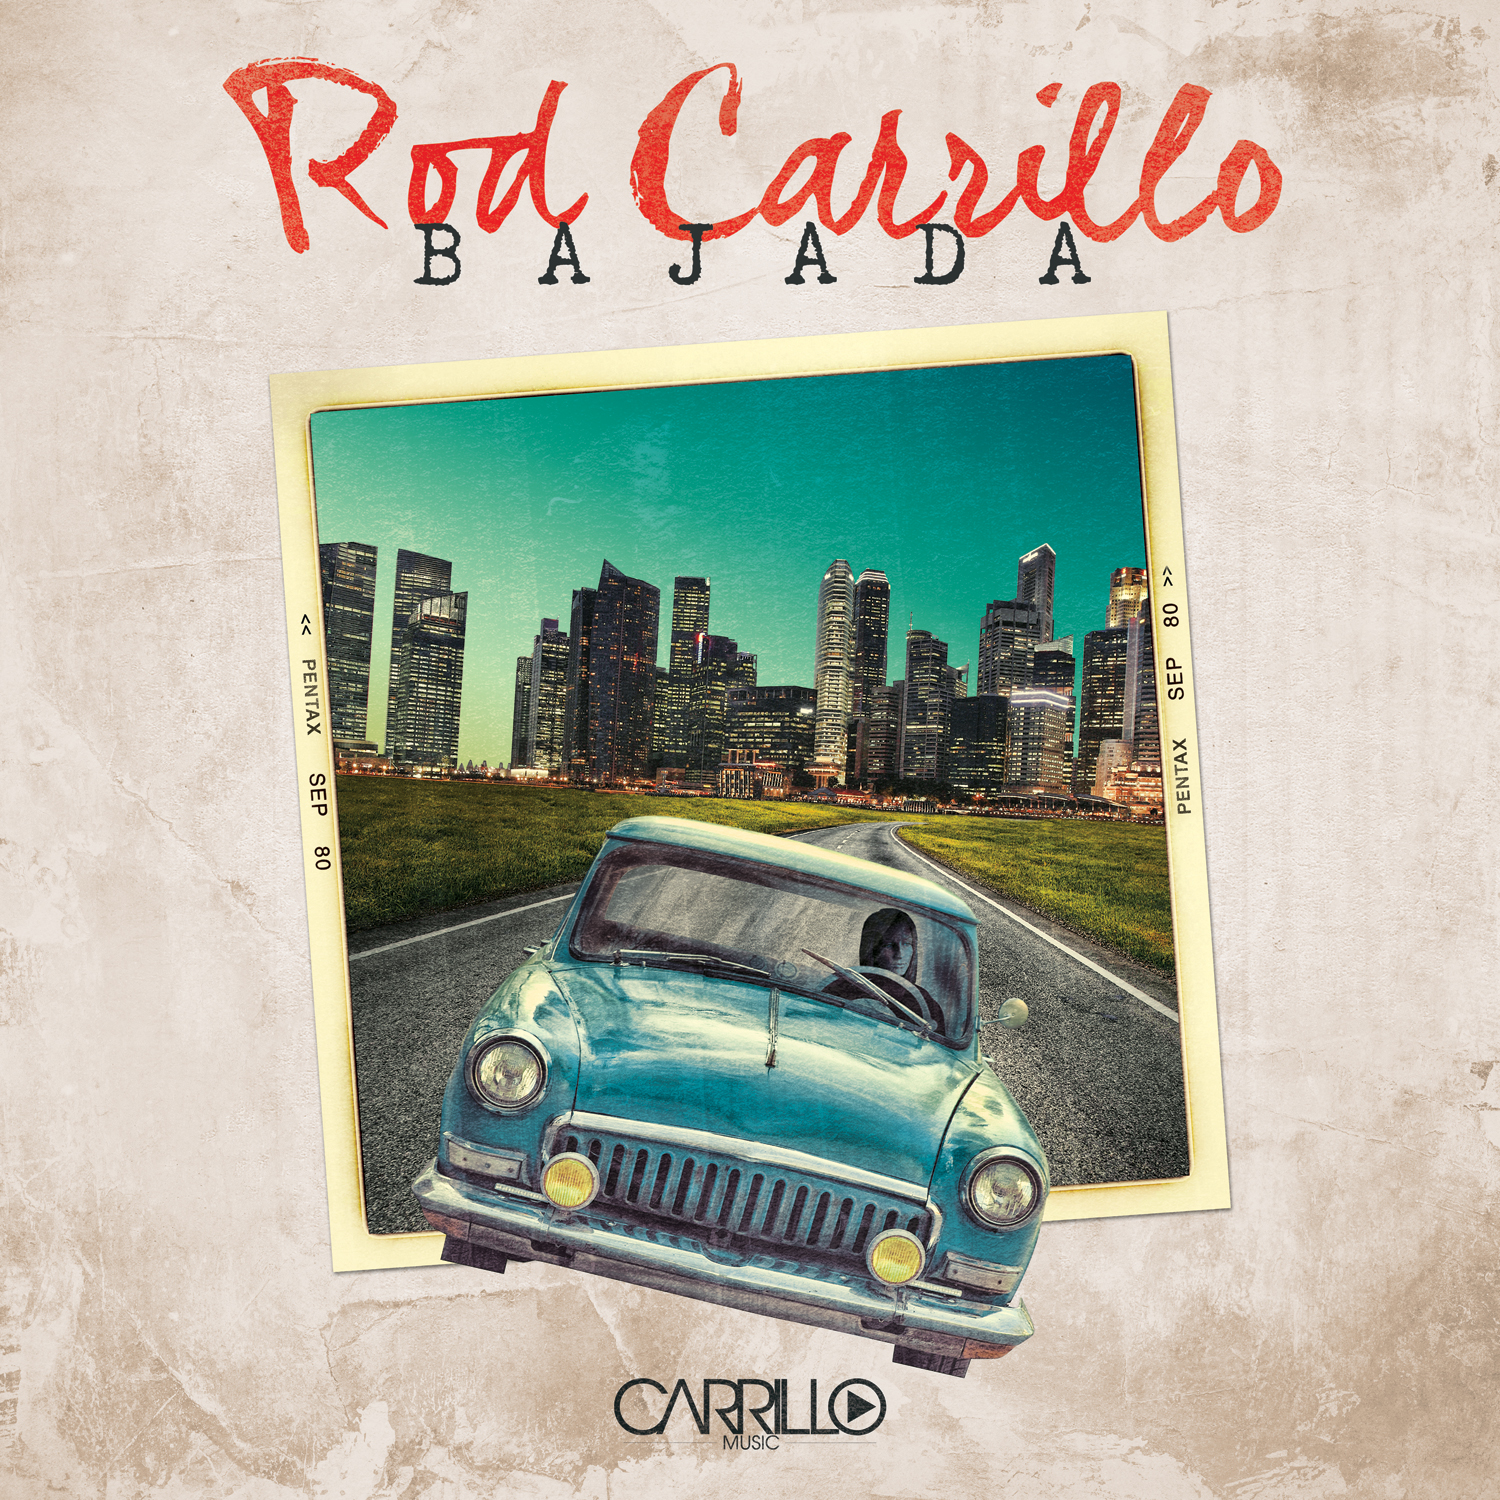 rod carrillo bajada- carrillo music